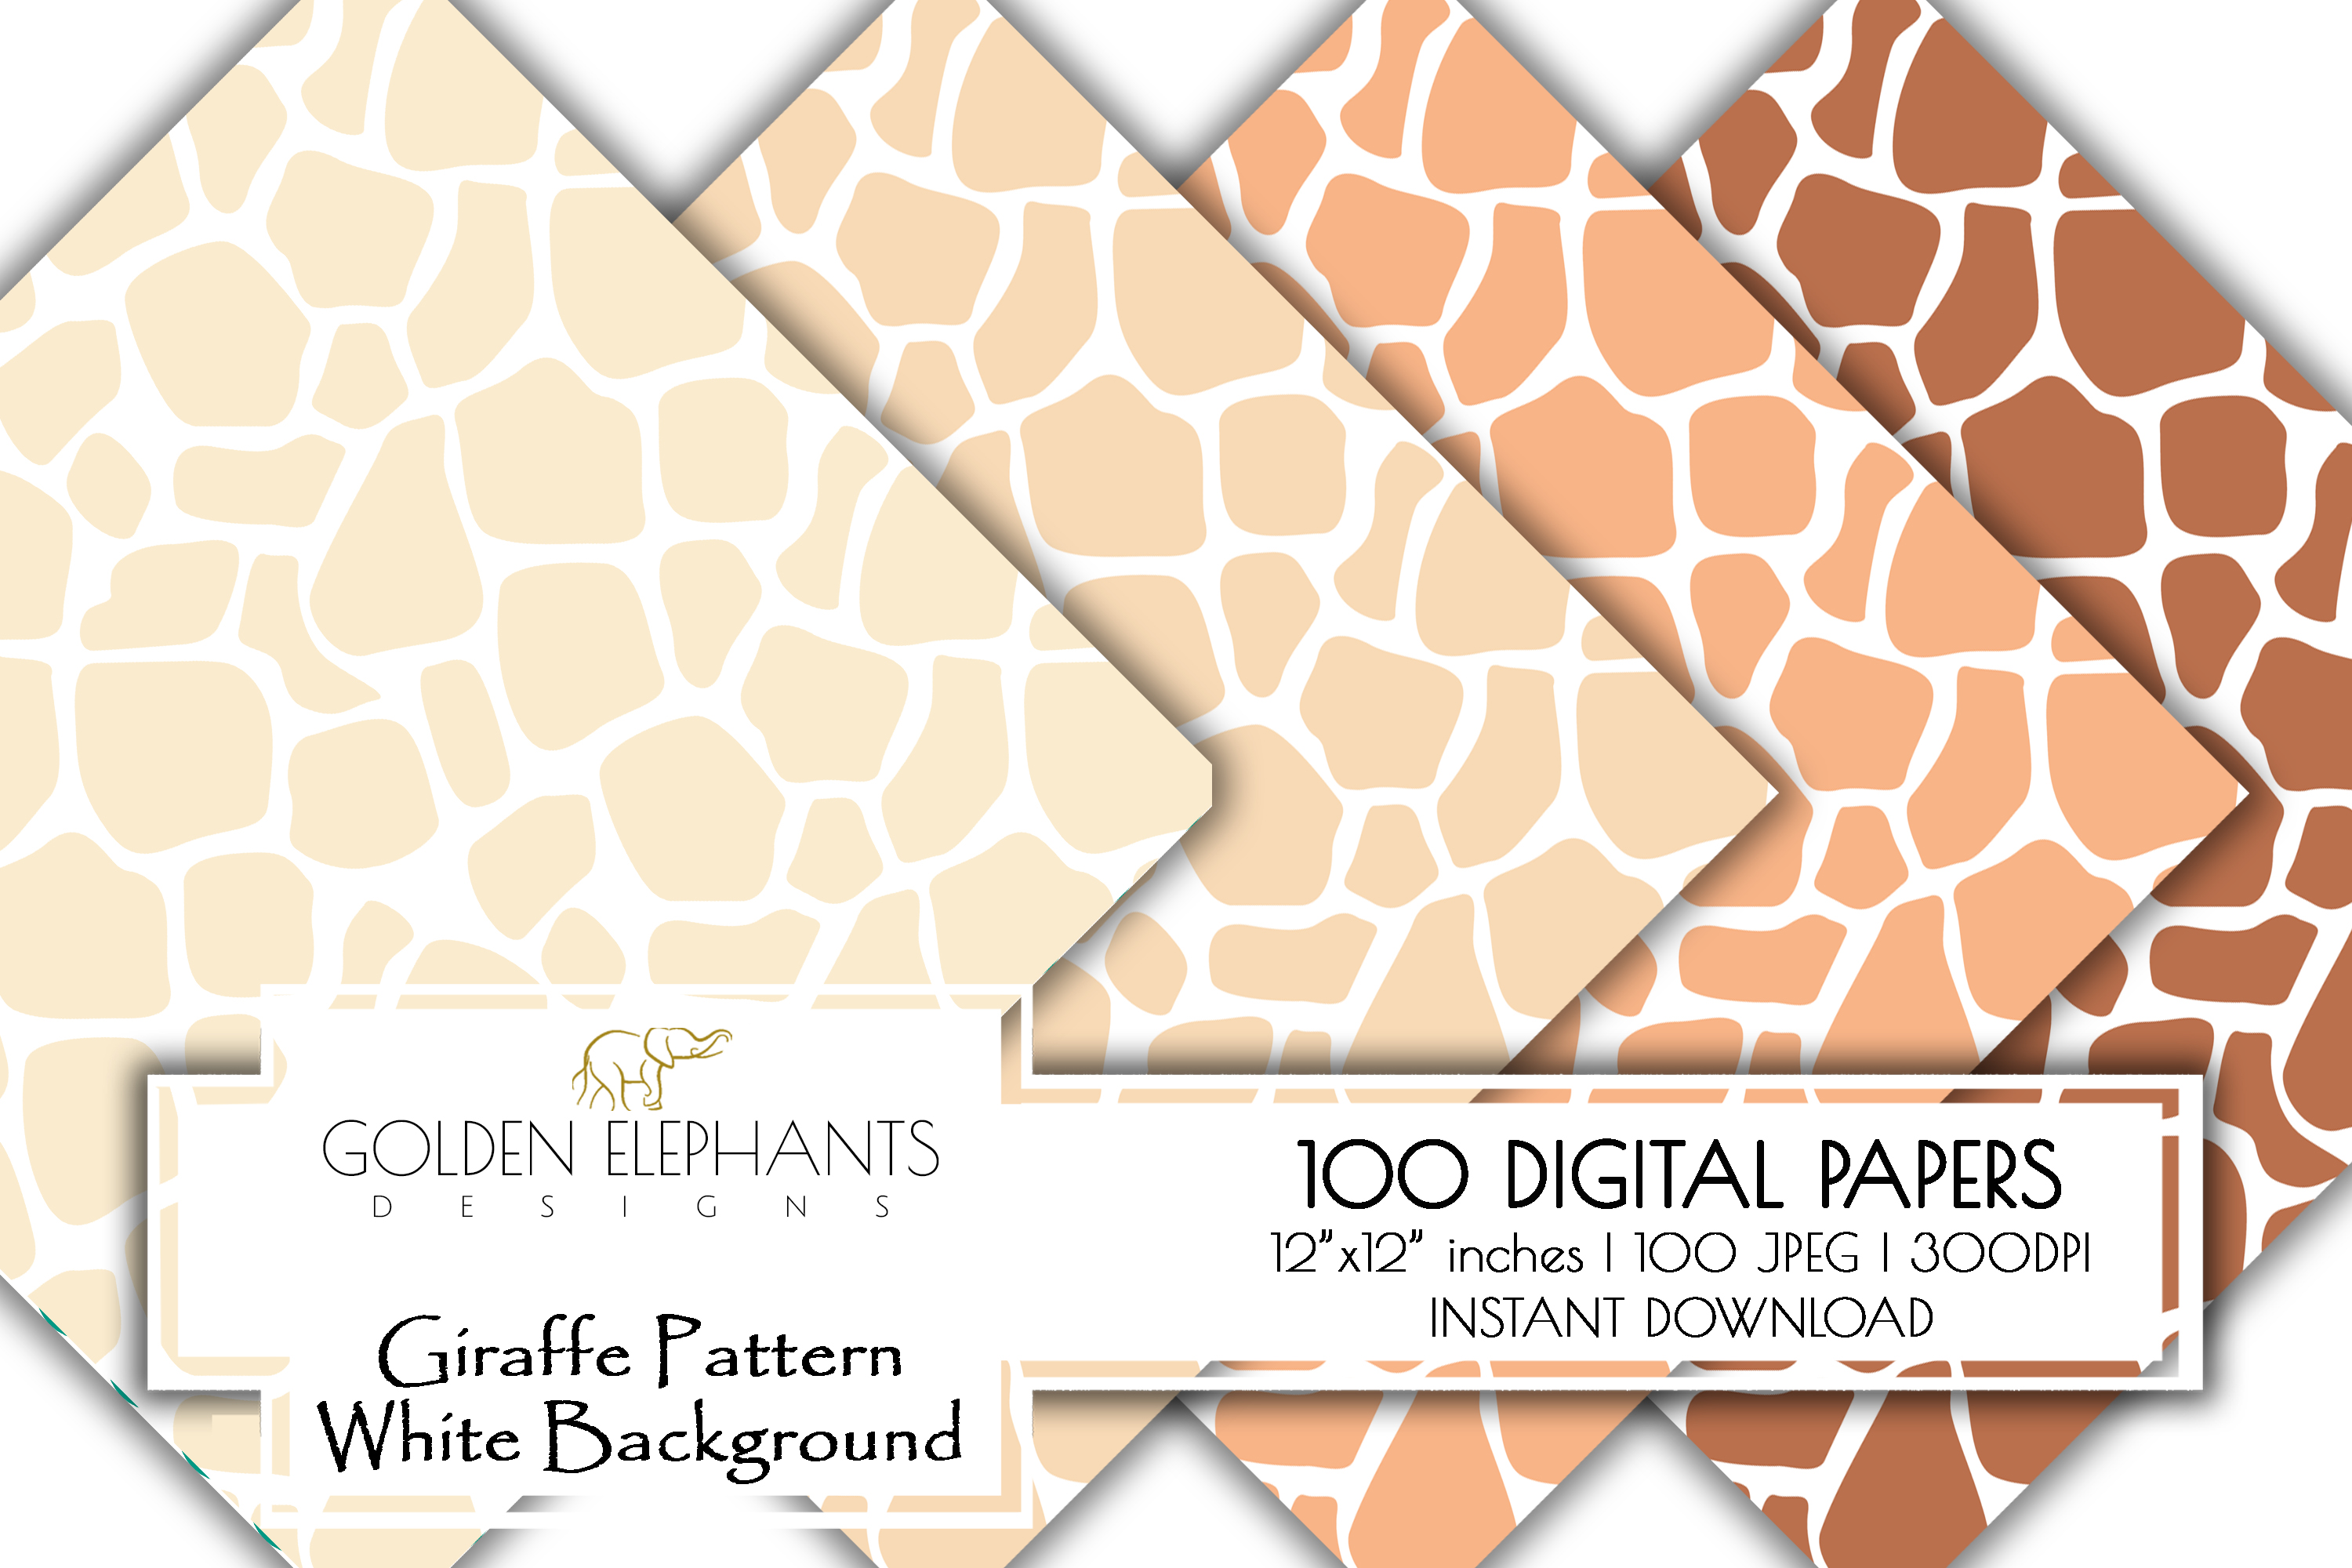 100 Giraffe Pattern w/ White Background Digital Paper example image 2